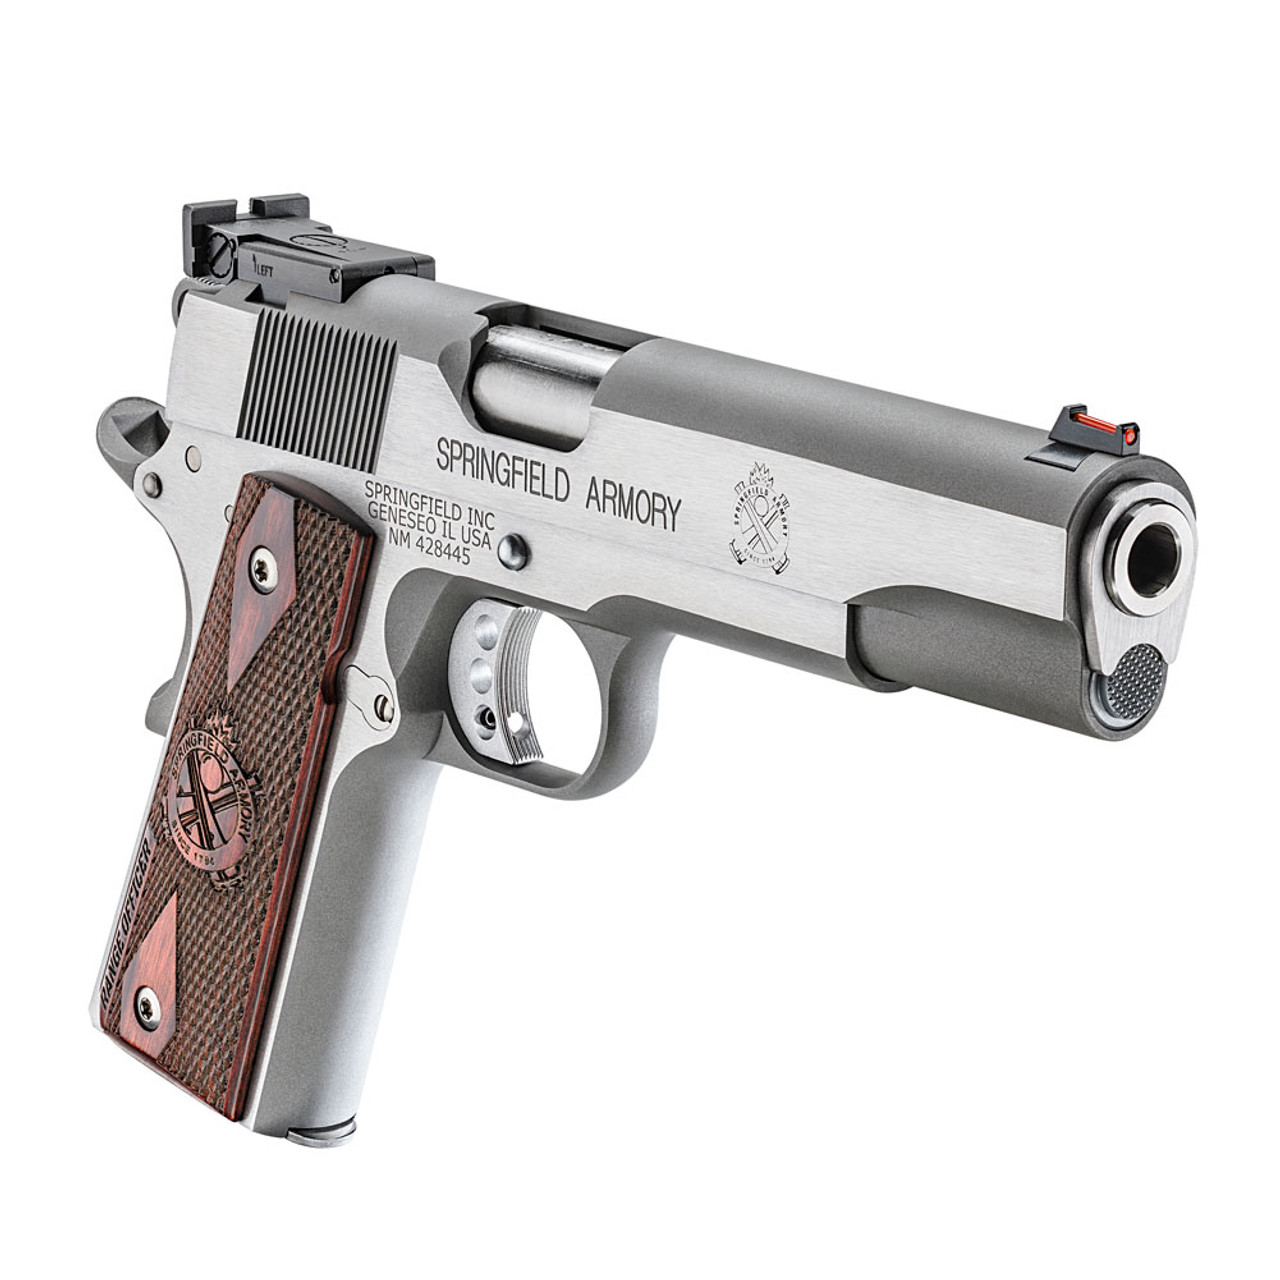 SPRINGFIELD ARMORY 1911-A1 Range Officer 9mm 5in 9rd Semi-Automatic Pistol  (PI9122L)